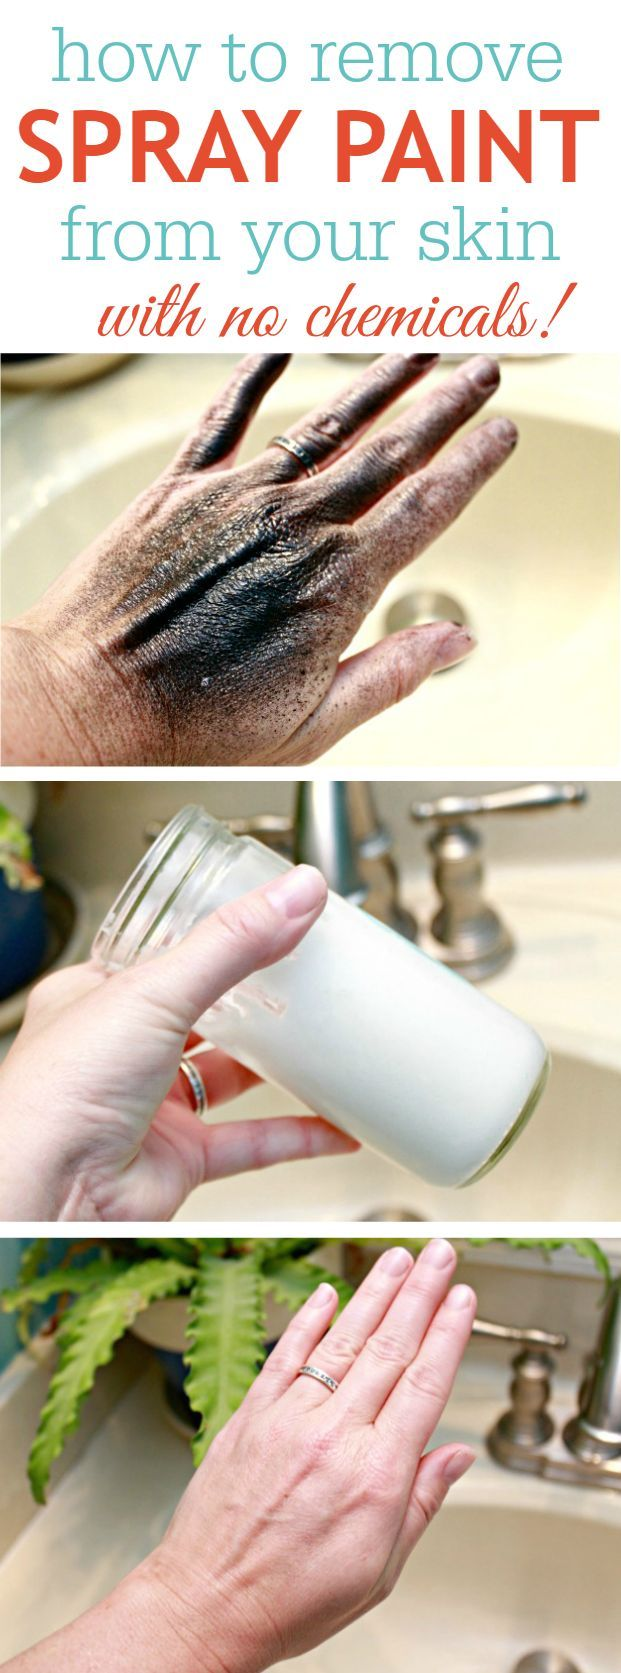 How To Remove Spray Paint From Your Skin - No Chemicals! Who knew coconut oil and baking soda could do that?